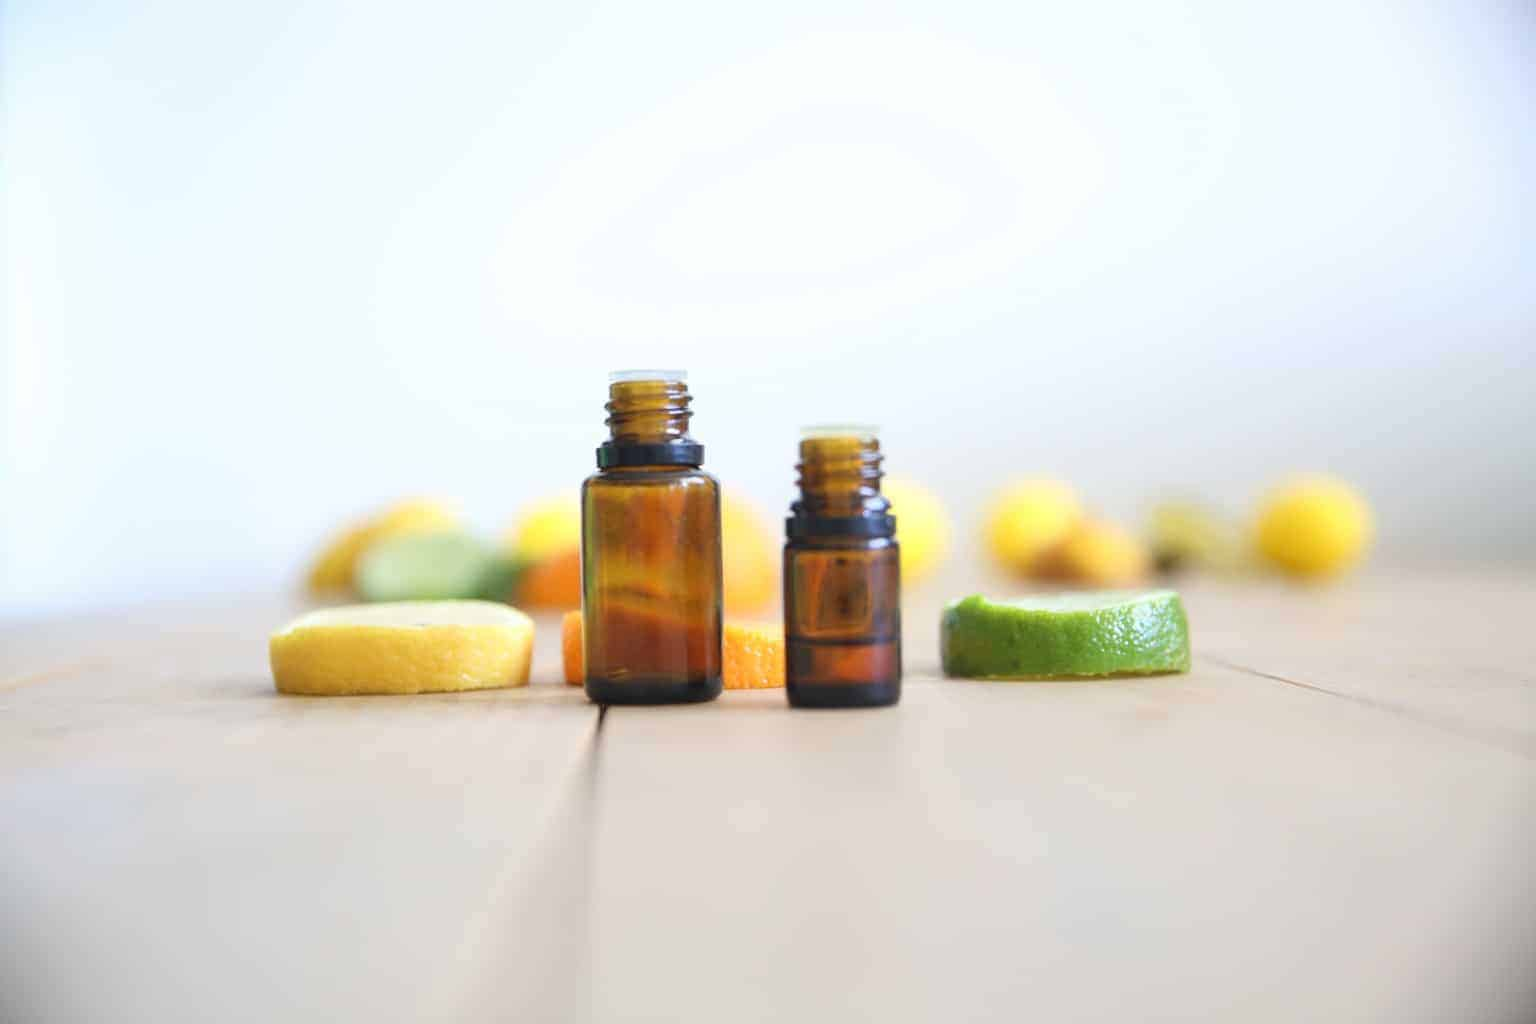 citrus essential oil bottles with sliced lemon and lime